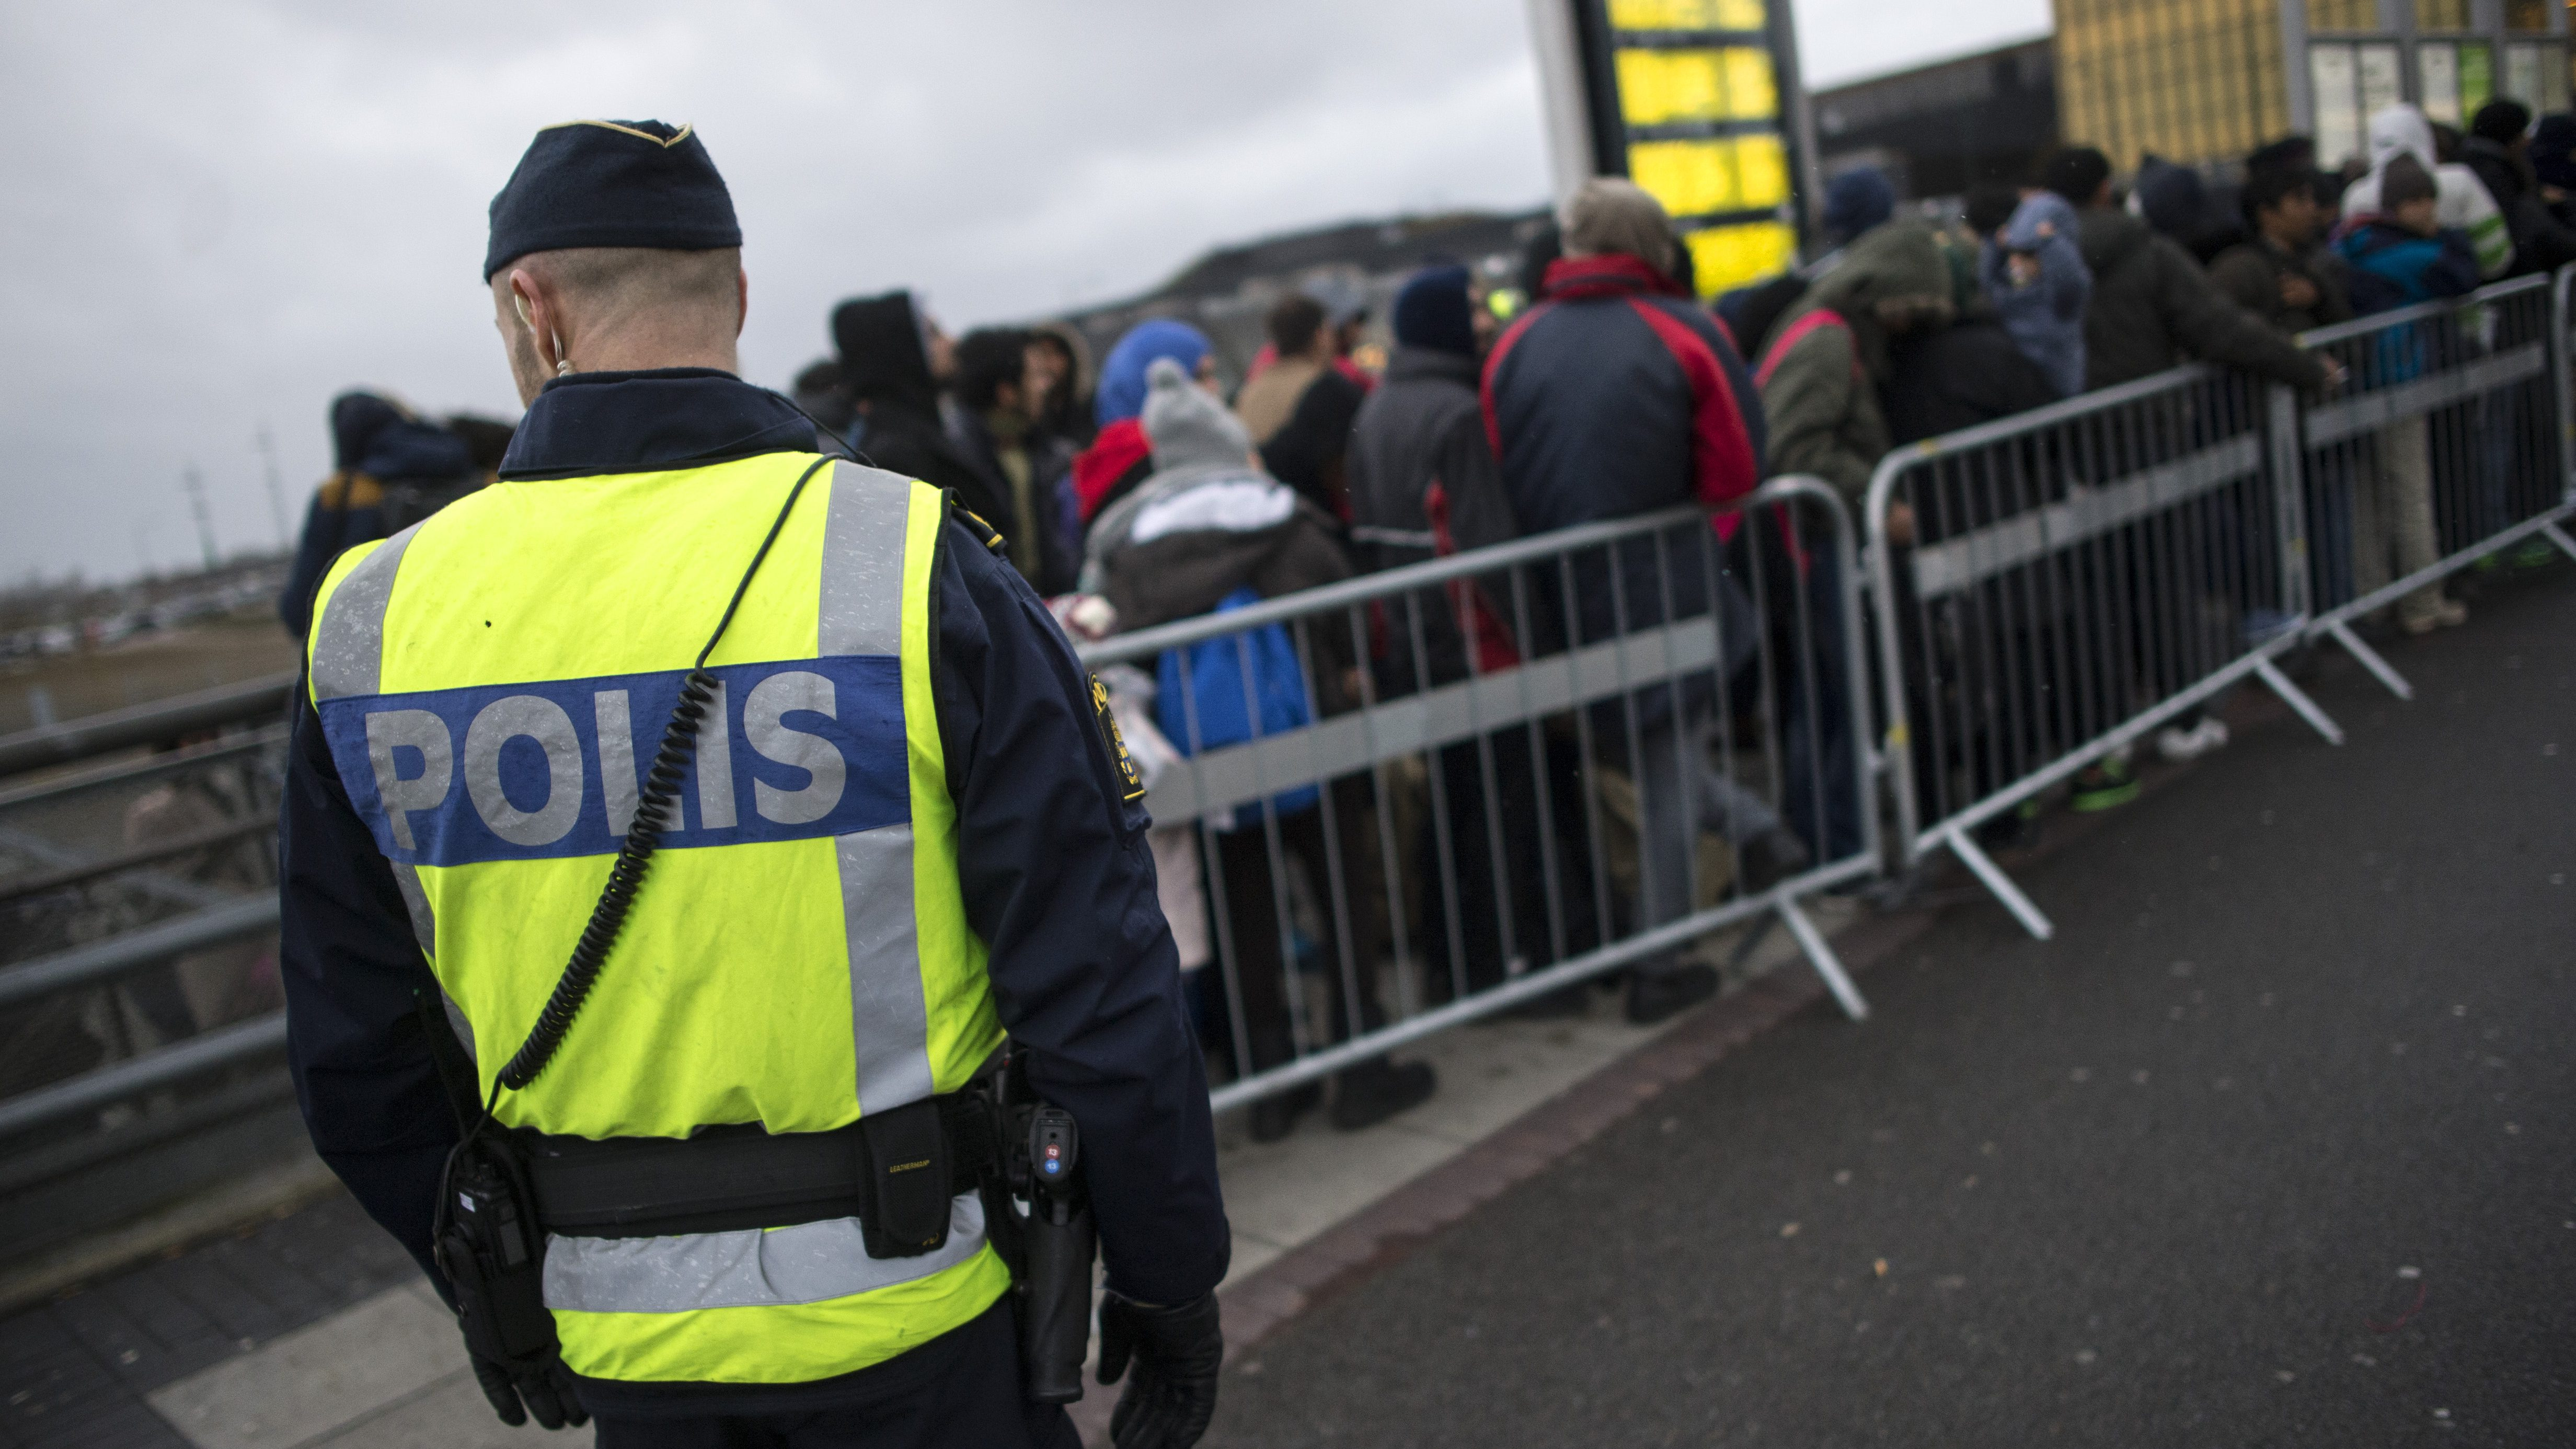 A police officer keeps guard as migrants arrive at Hyllie station outside Malmo.